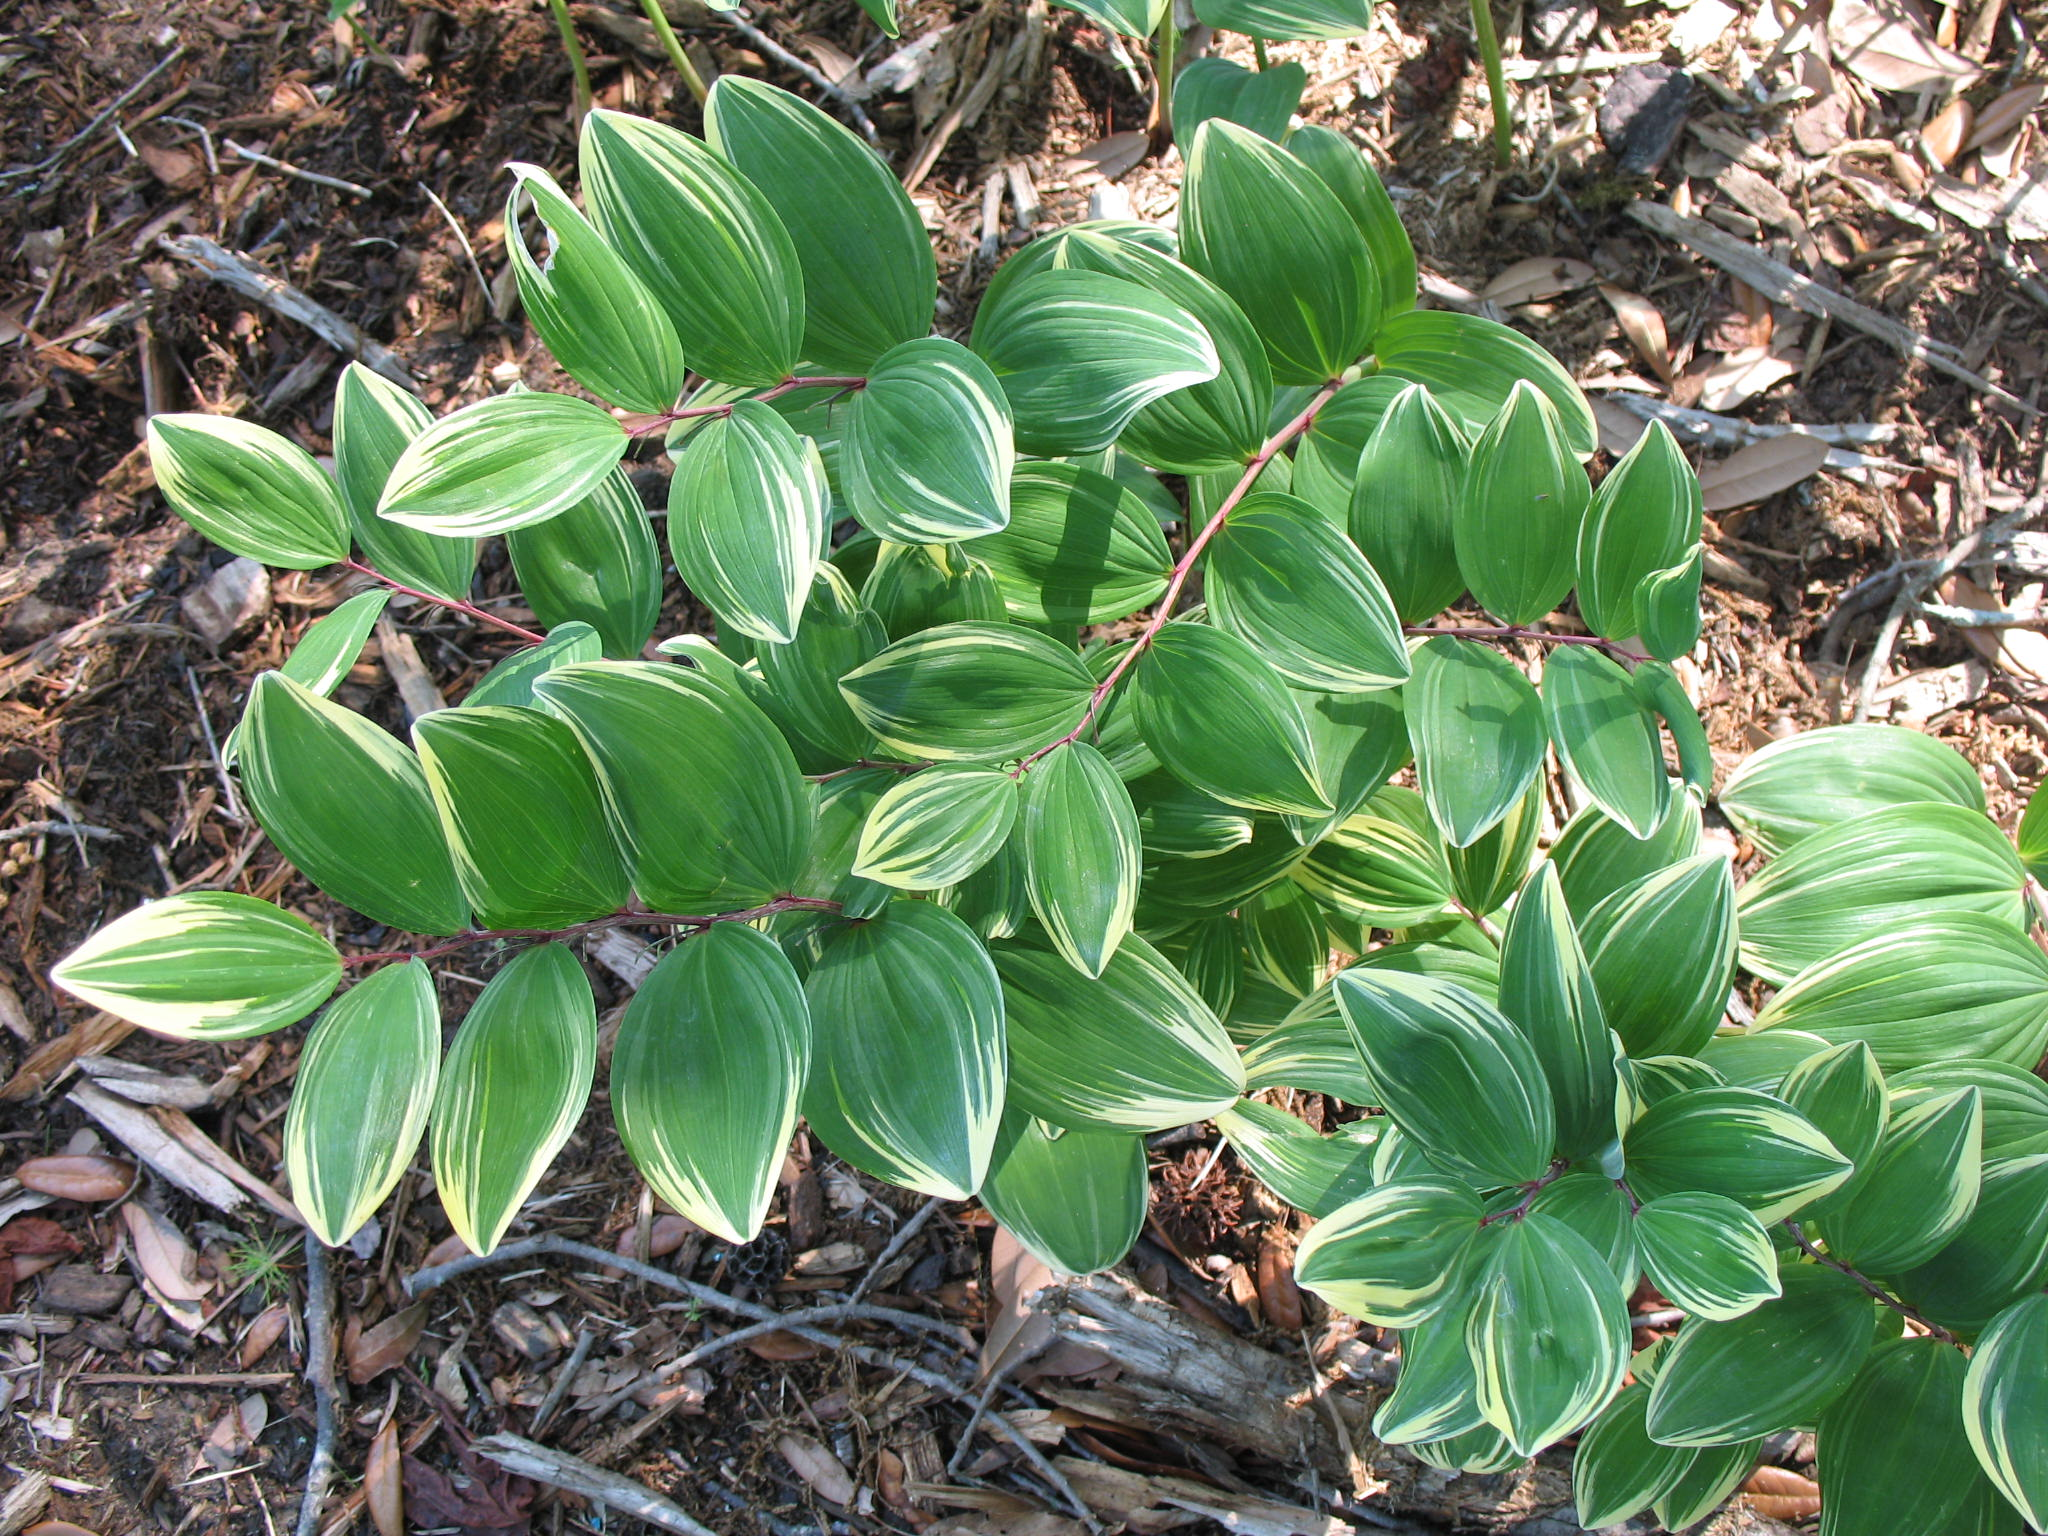 Polygonatum species  / Polygonatum species